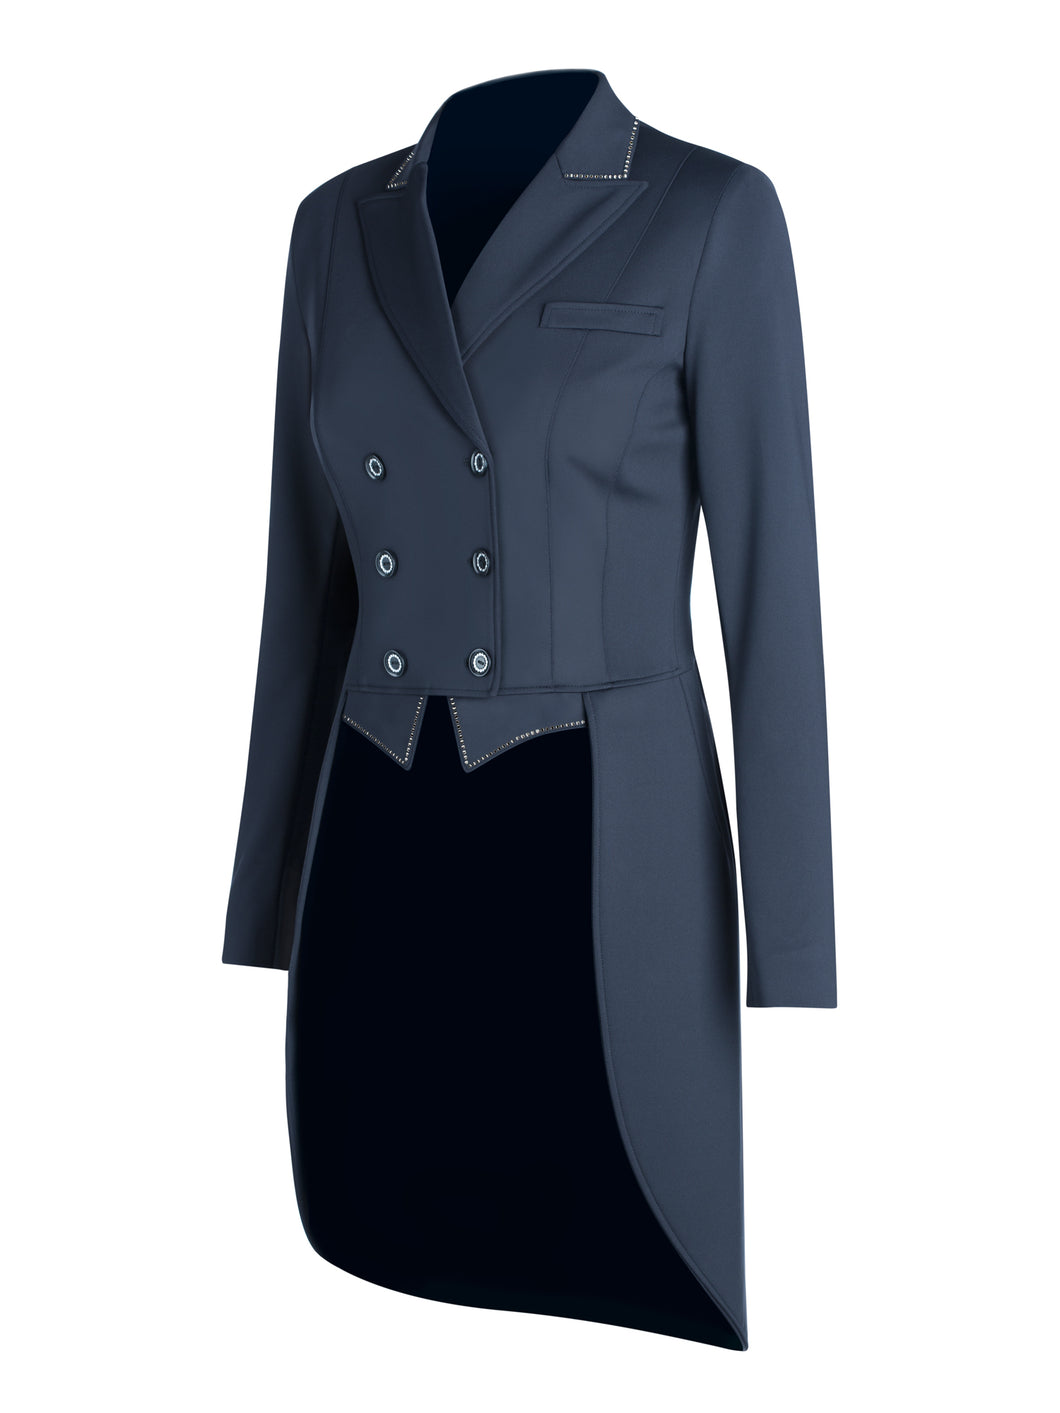 Isabel Tailcoat - Reform Sport Equestrian Clothing